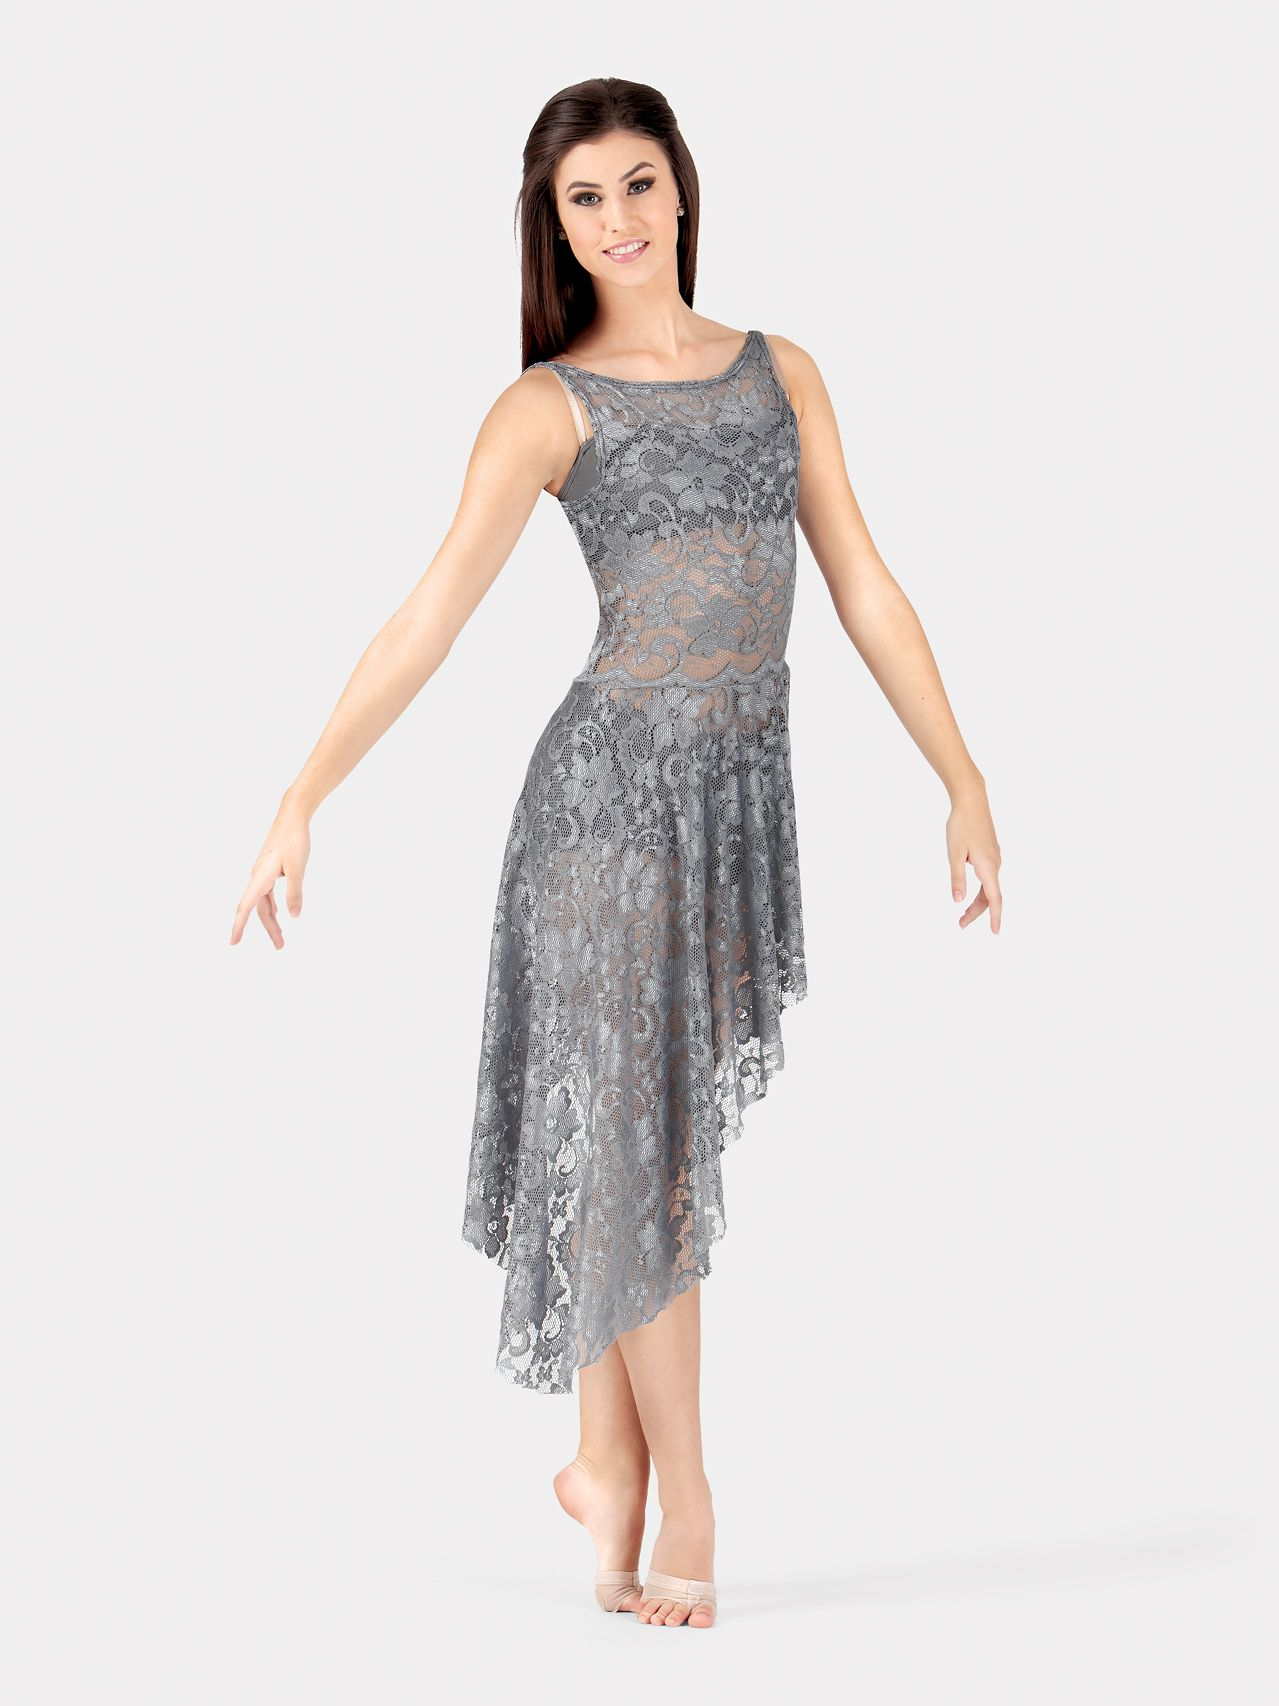 Free Shipping - Adult Emballe Long Tank Overdress by DOUBLE PLATINUM